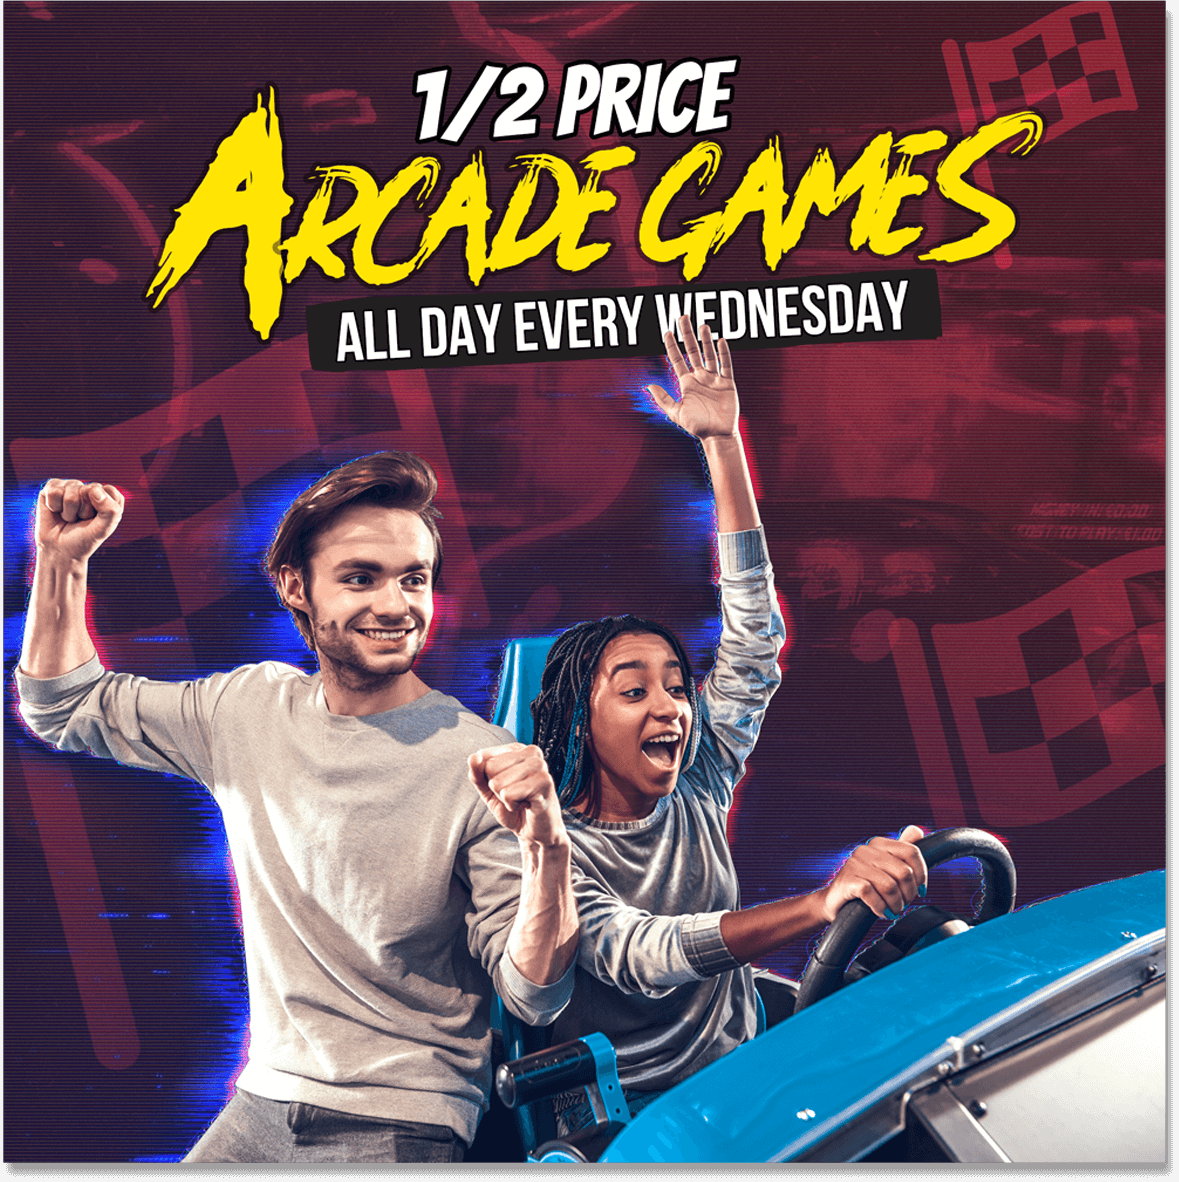 Wednesday 1/2 Price Arcade Games